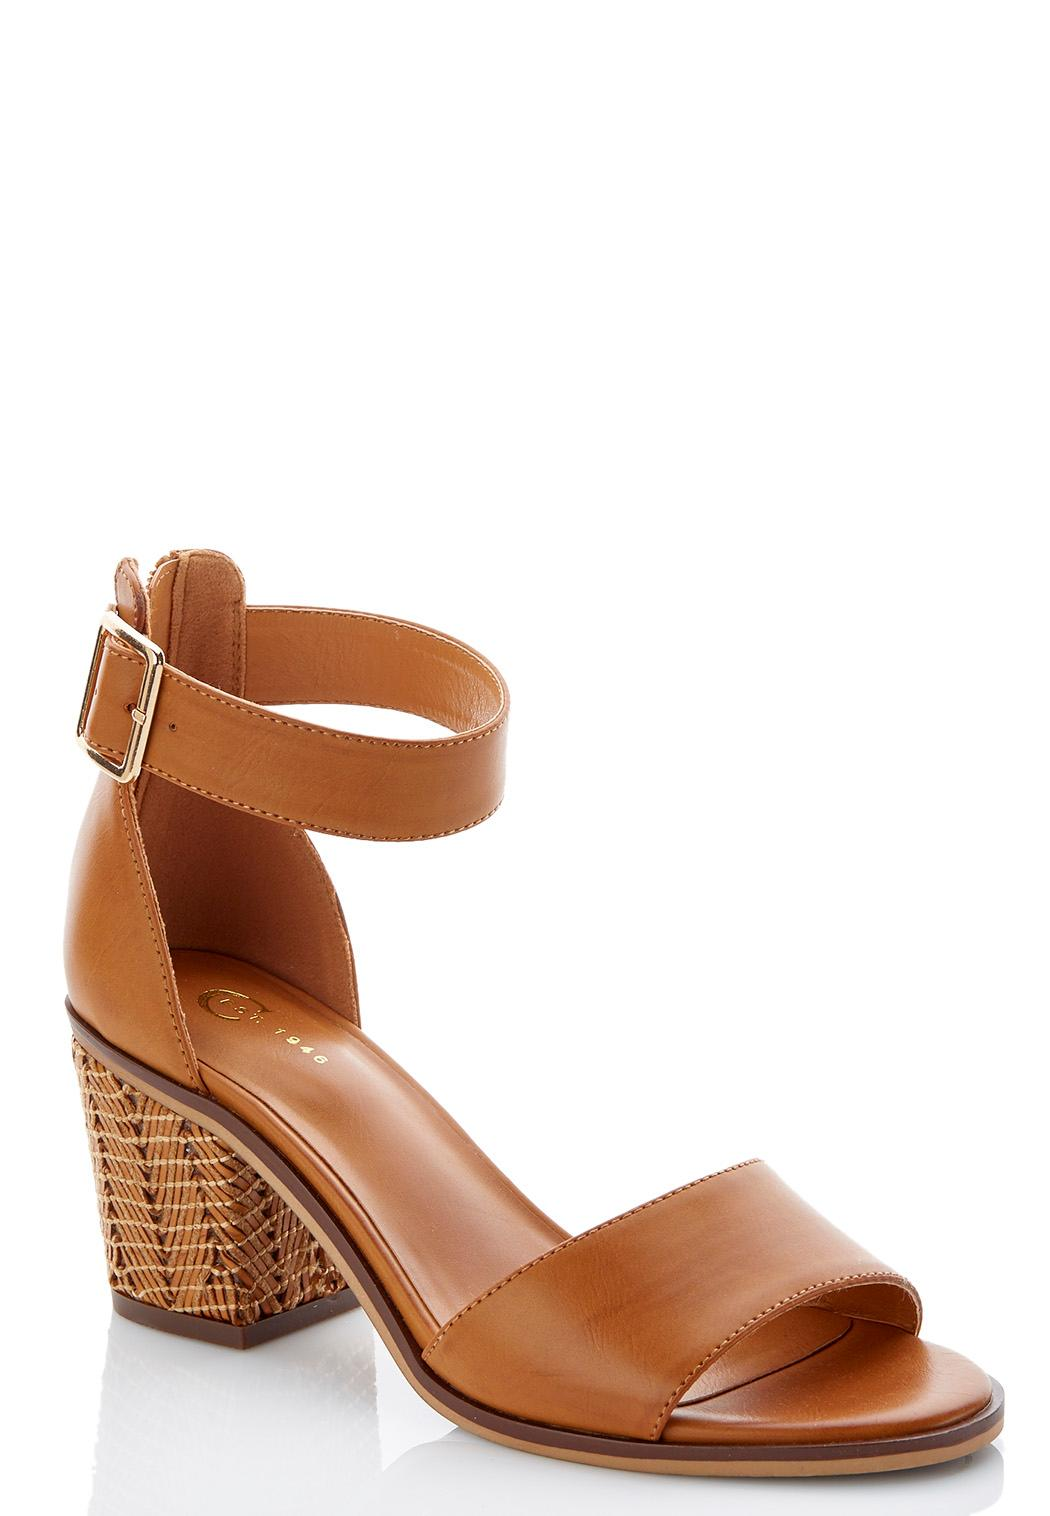 Woven Heel Chunky Sandals Heels Cato Fashions - What is commercial invoice shoe stores online